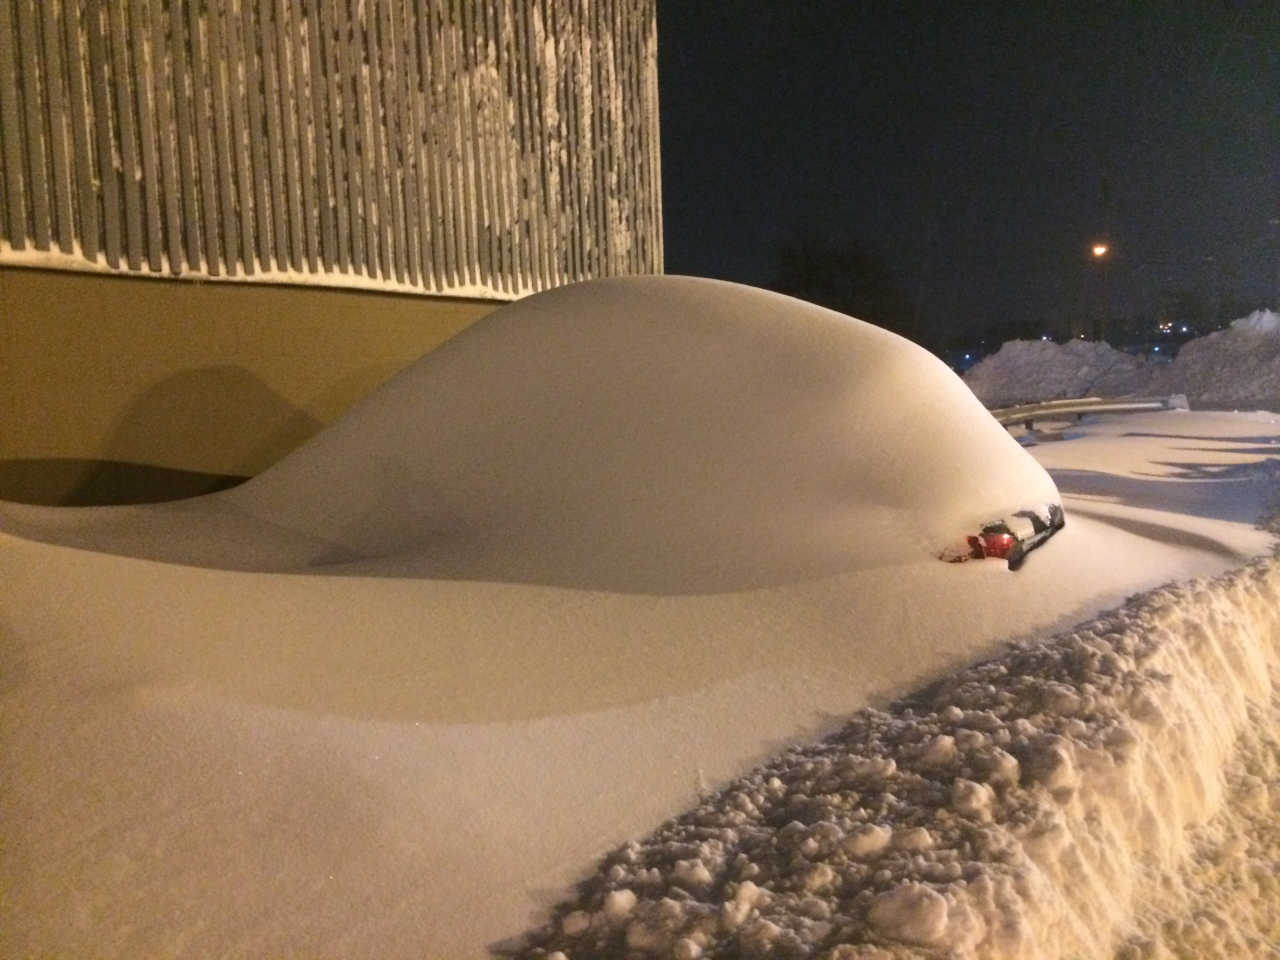 Winter 2015: My car, WTF?